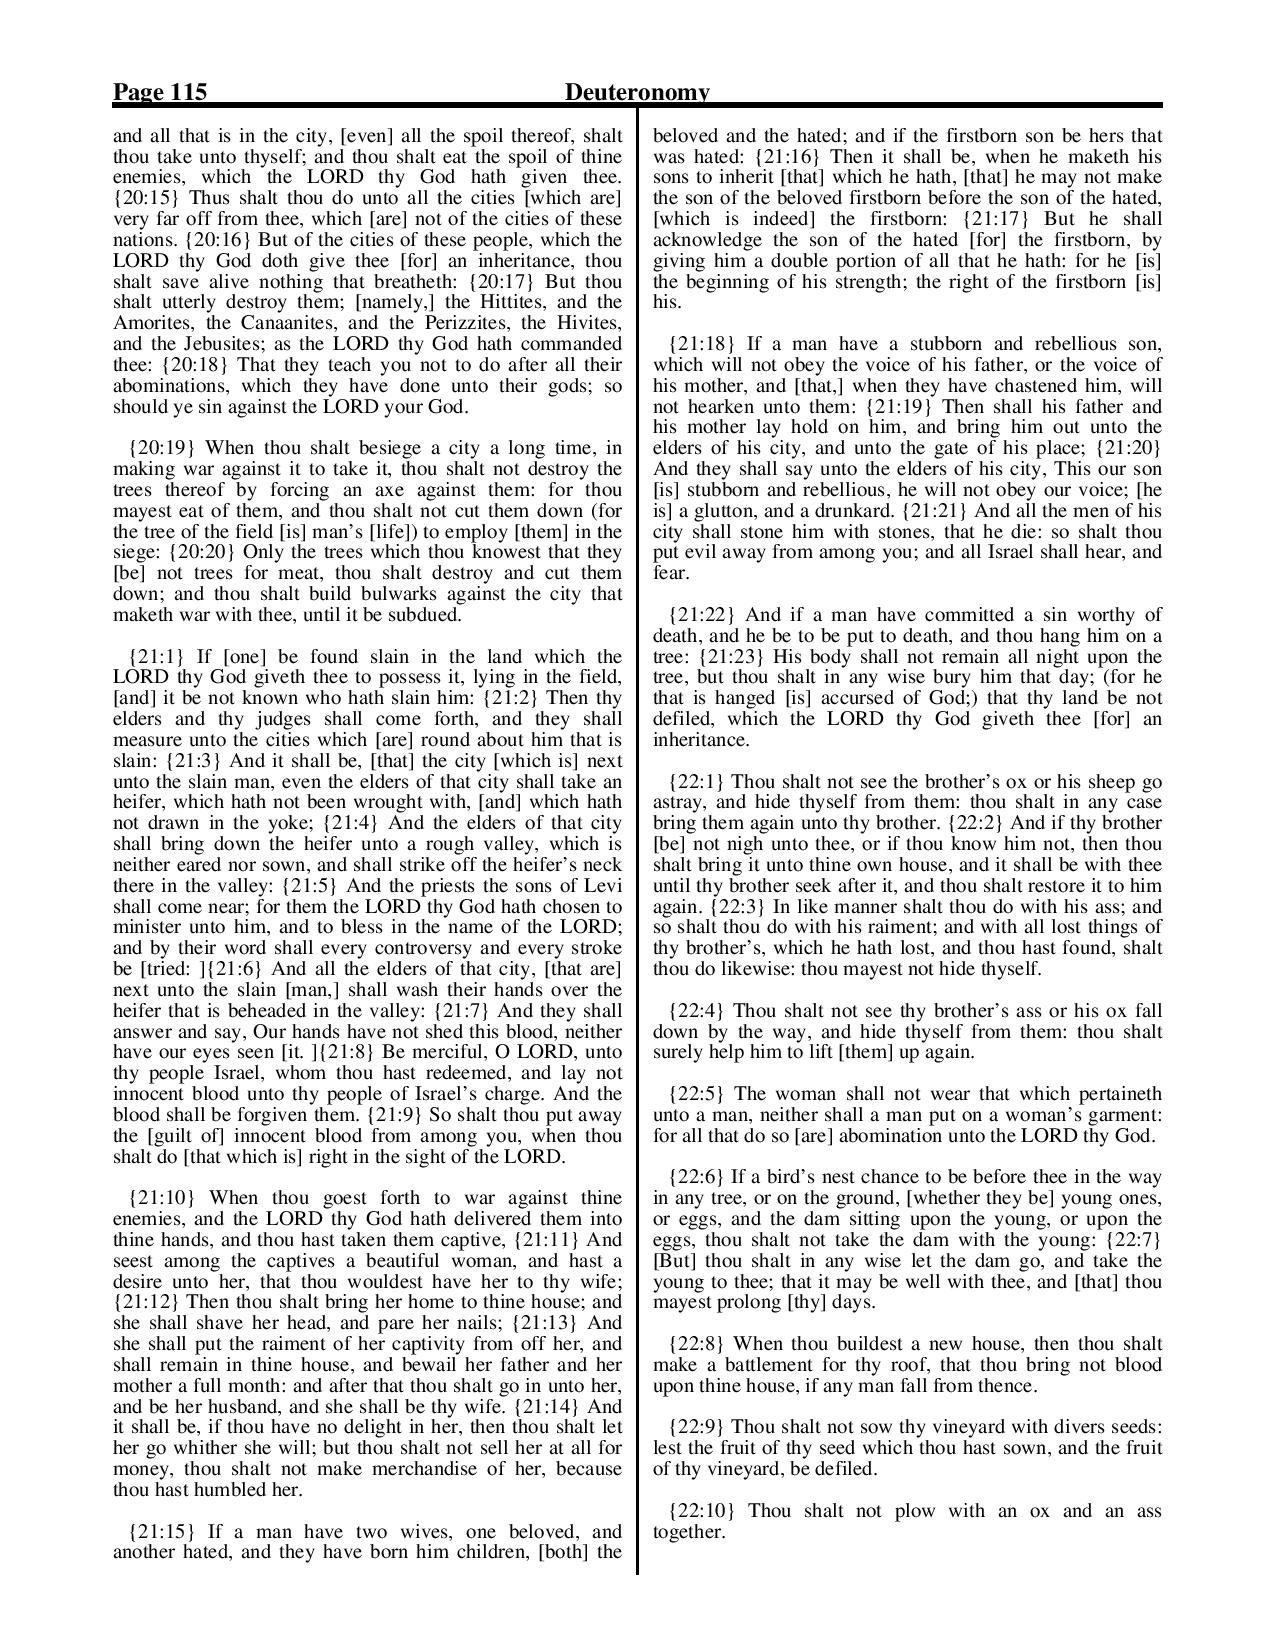 King-James-Bible-KJV-Bible-PDF-page-136